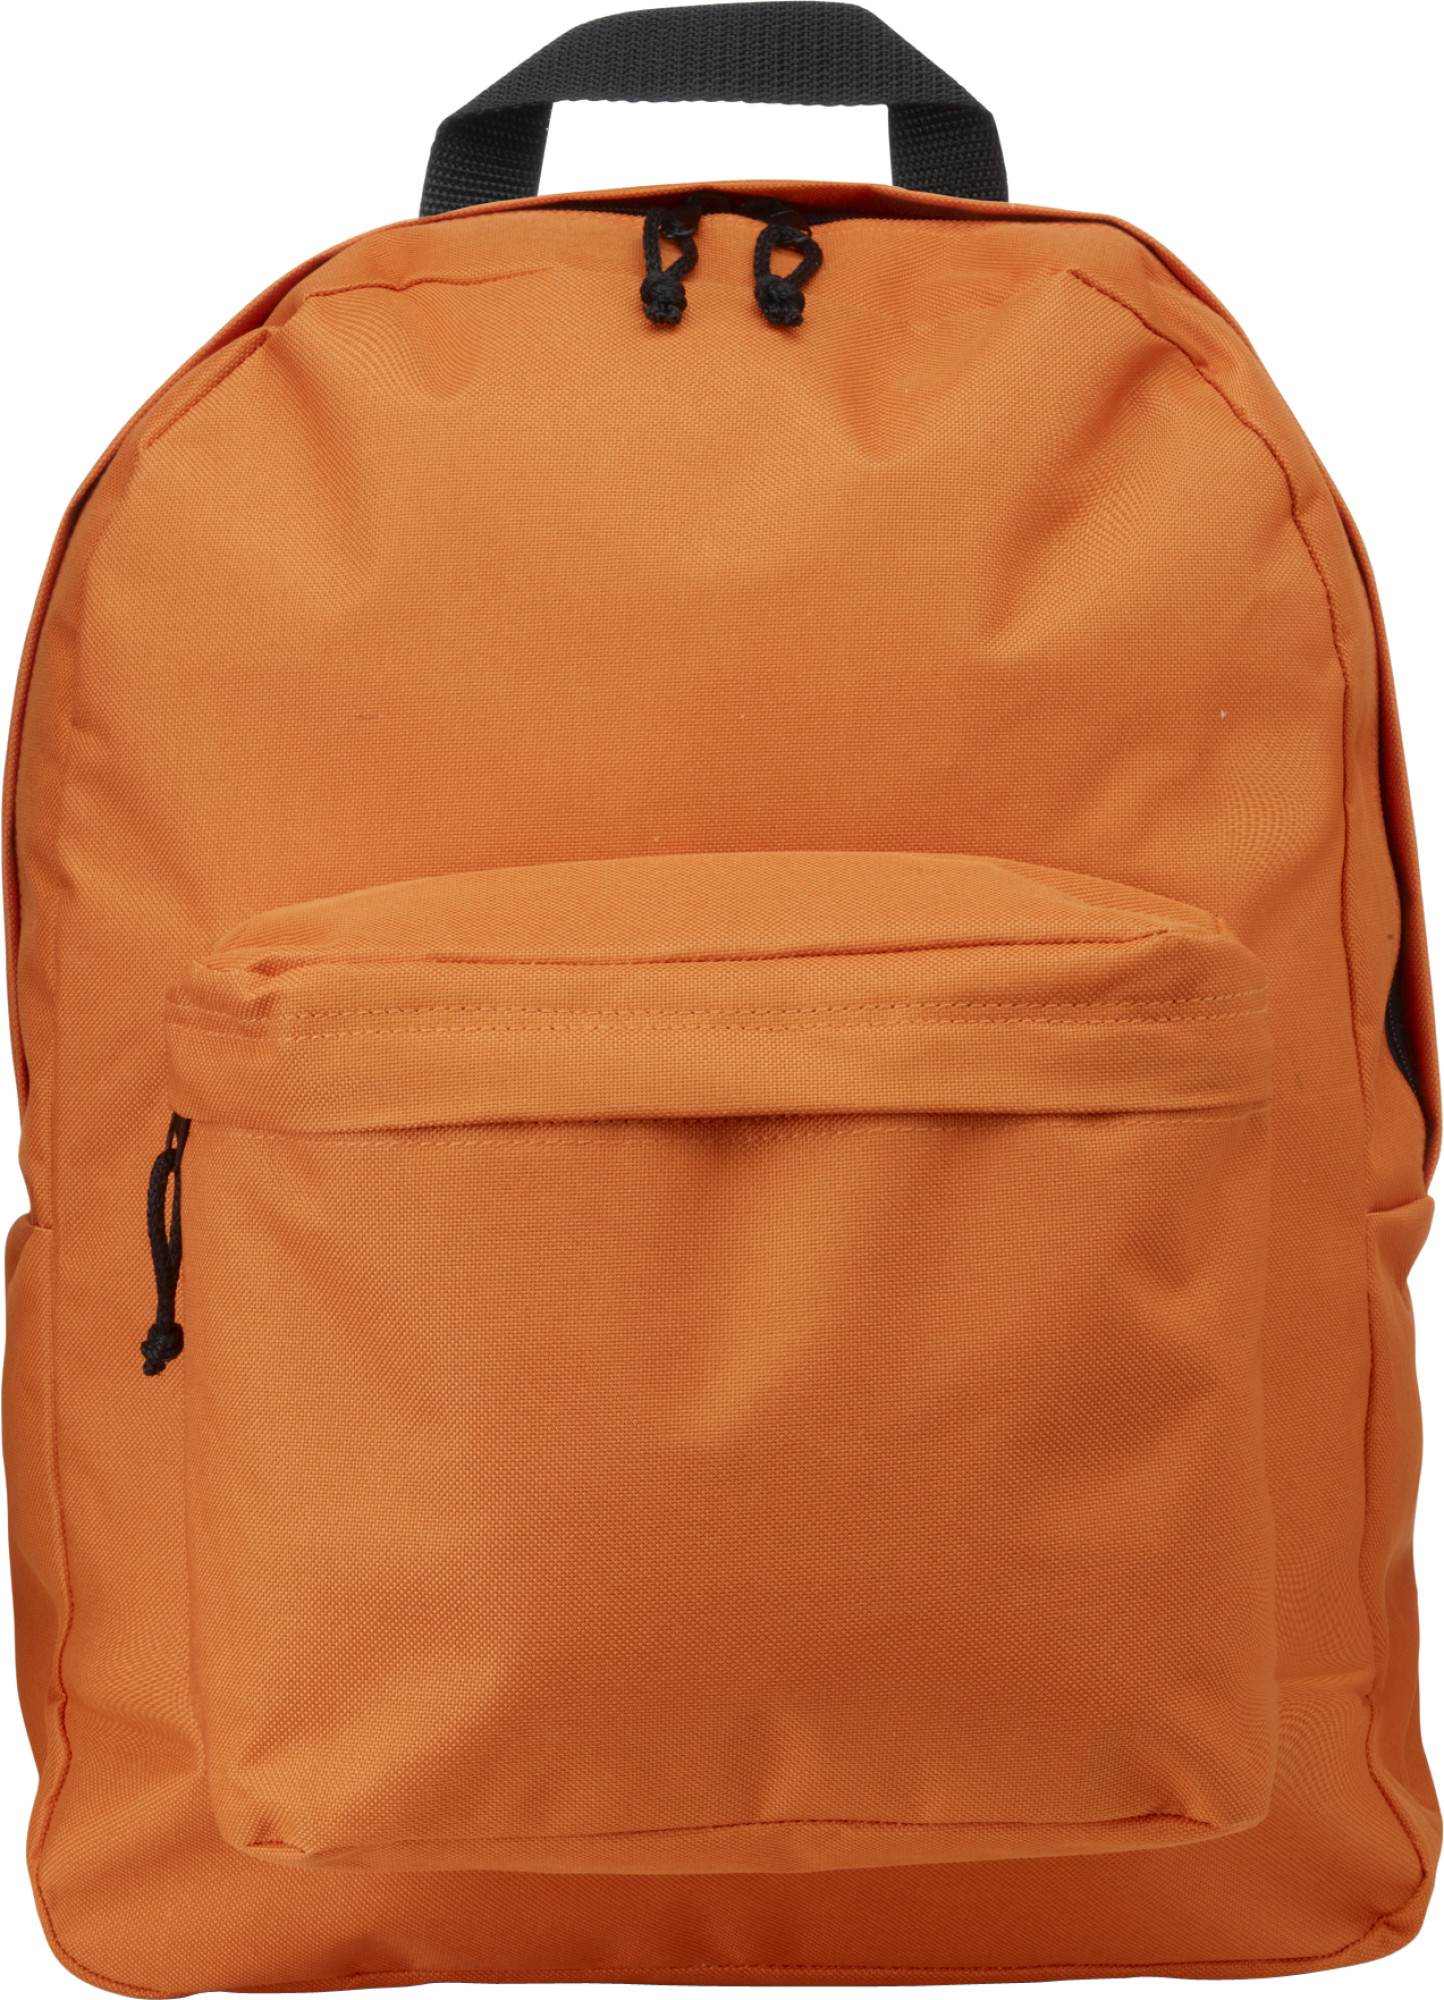 Promotional Polyester backpack